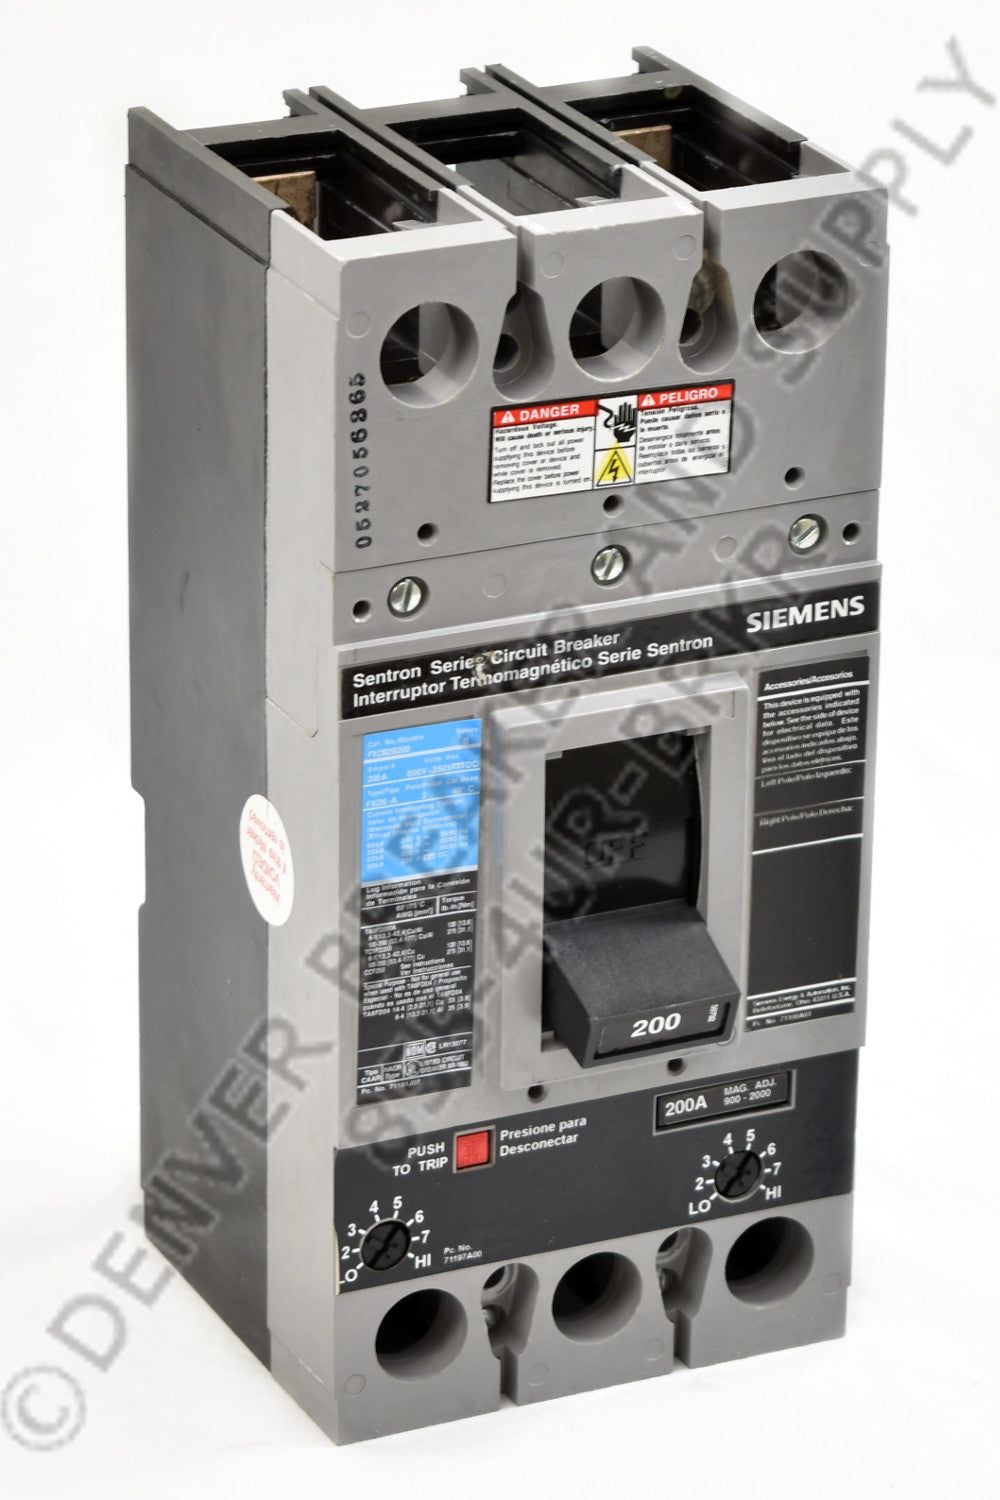 Siemens FD62B150 Circuit Breakers